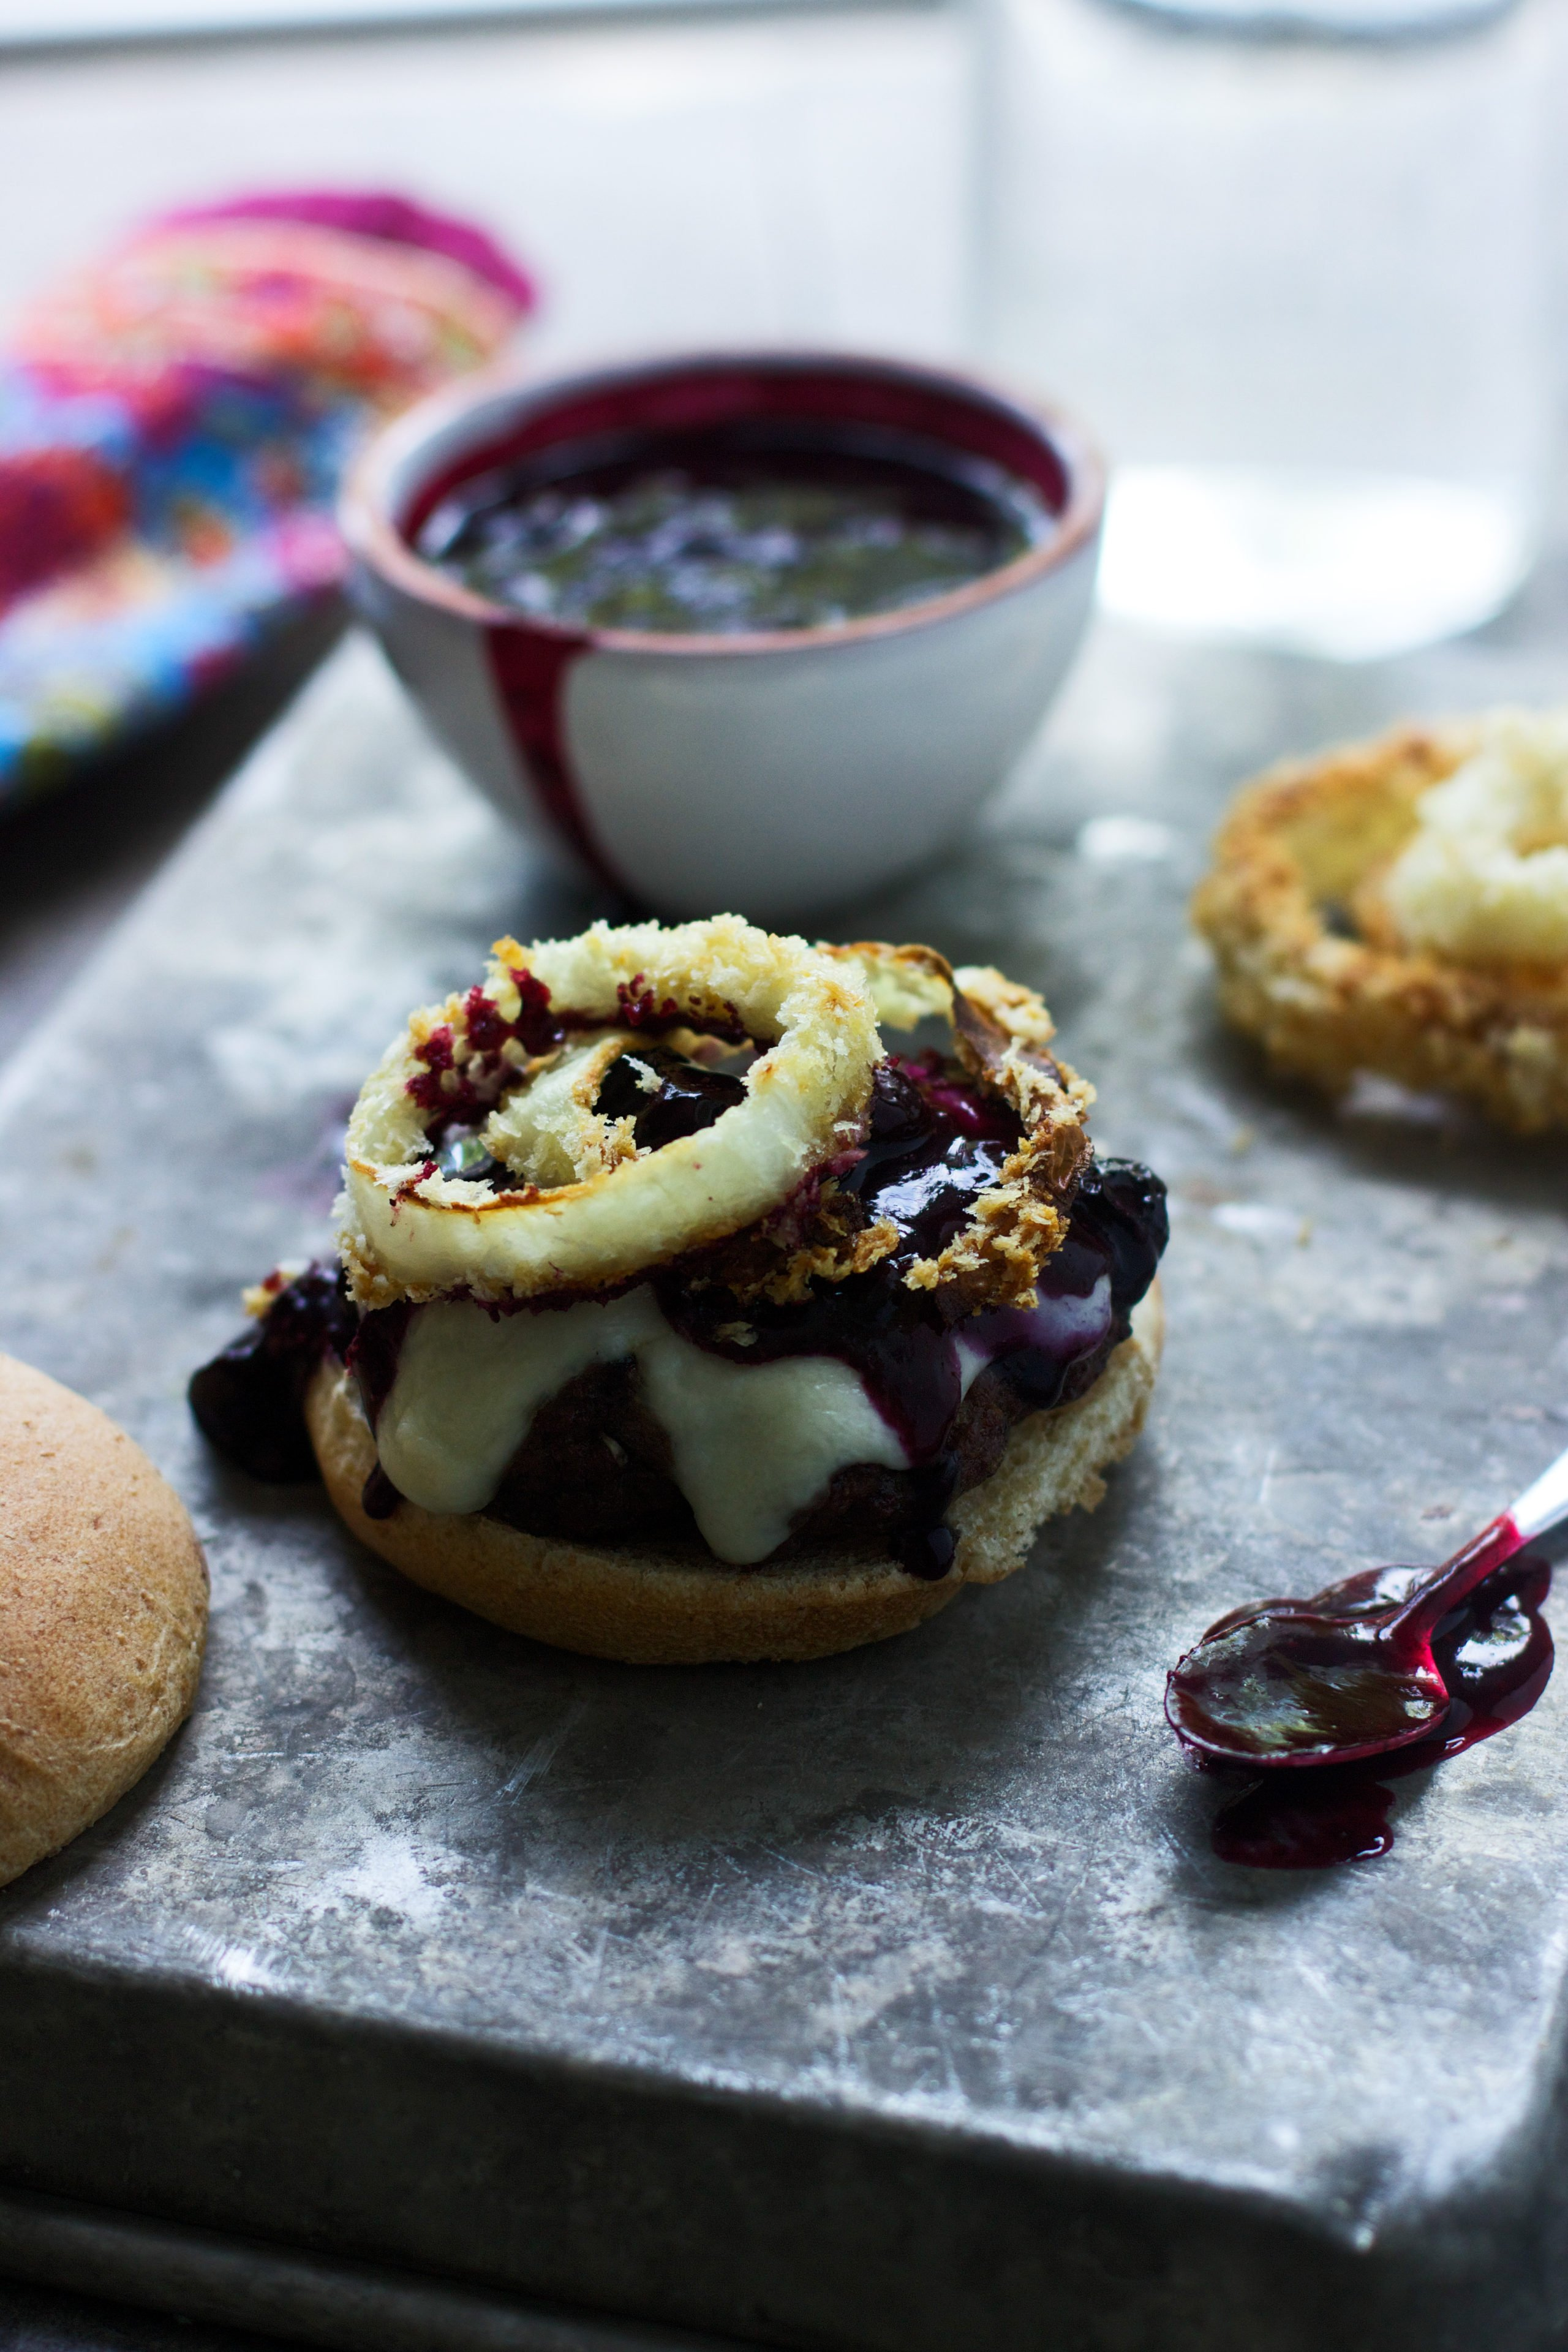 Burgers with Balsamic Blueberries, Baked Onion Ring and Mozzarella 3